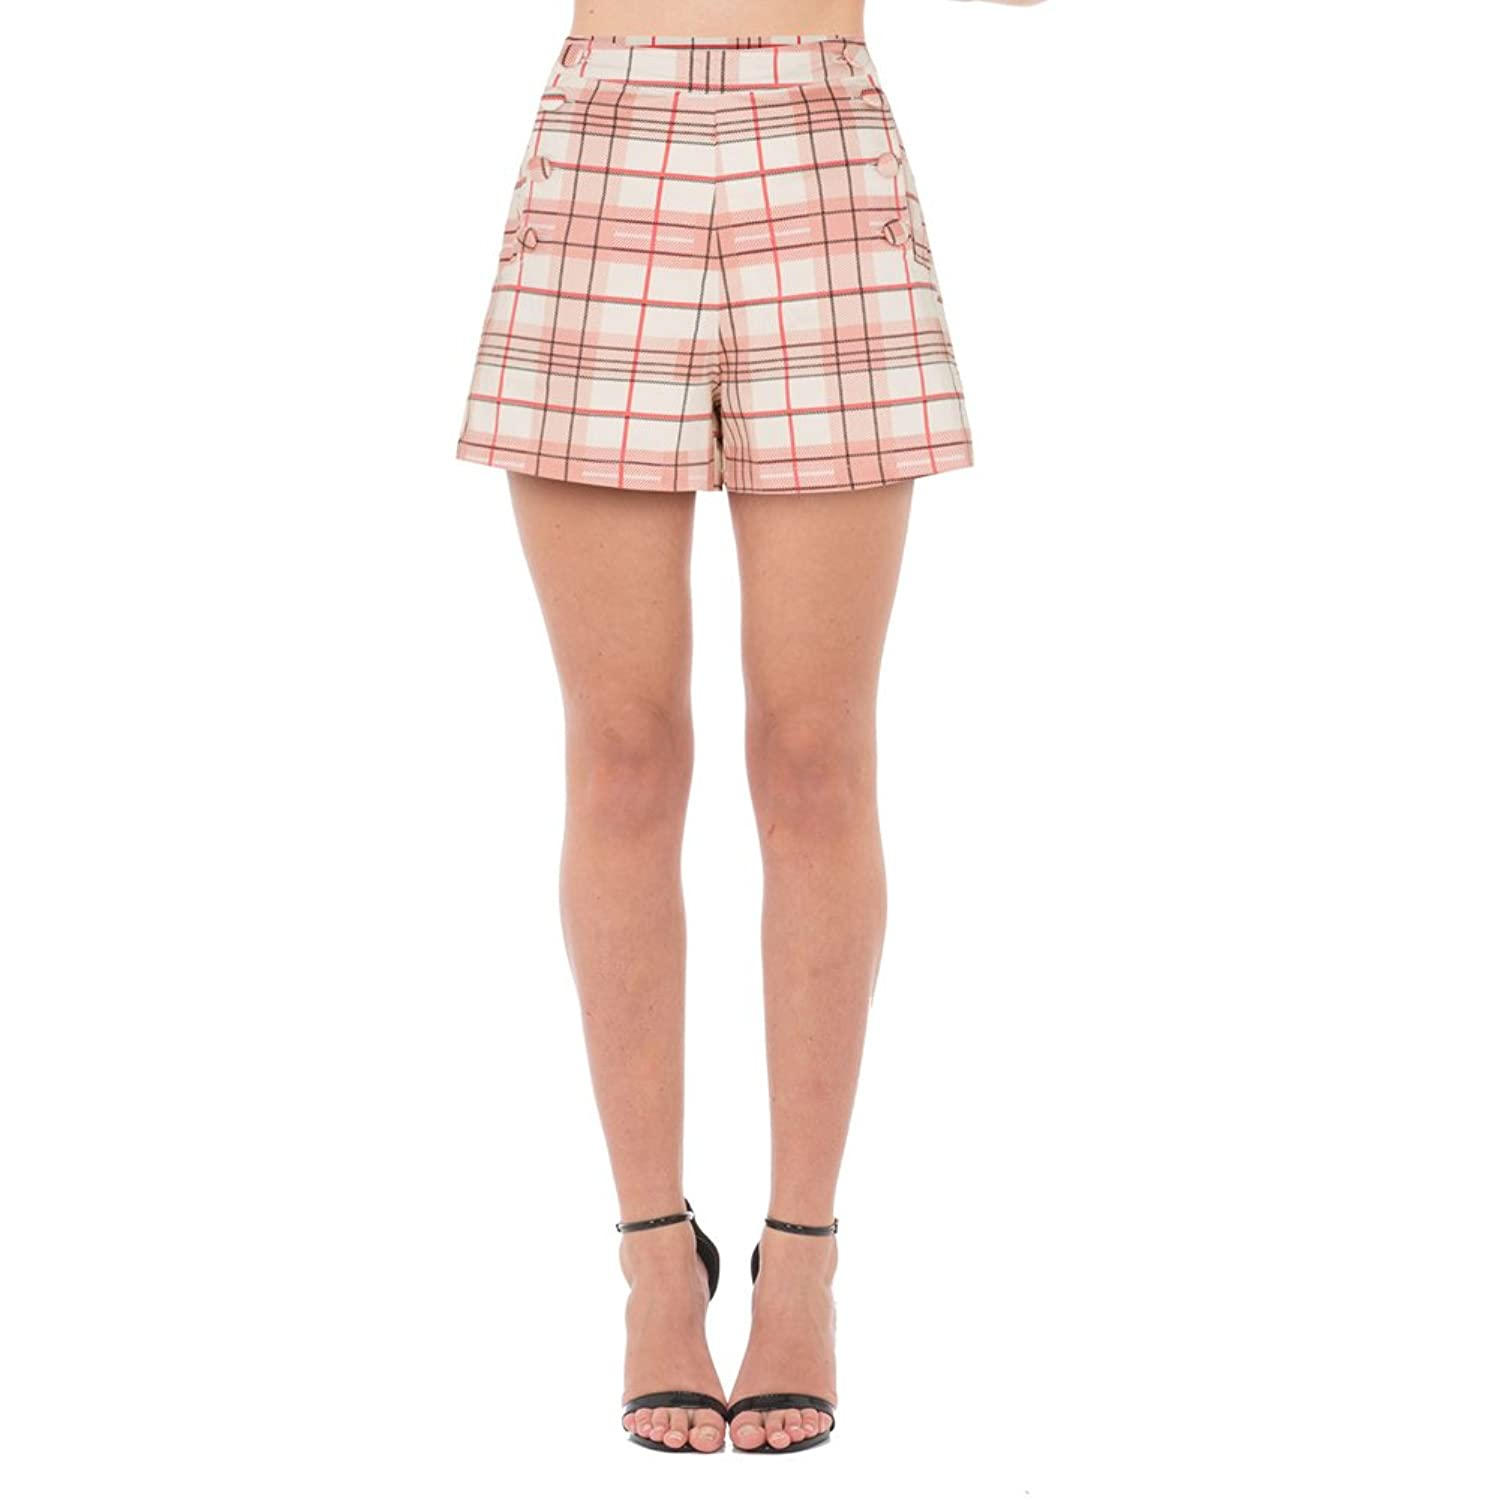 1950s Shorts History Womens Voodoo Vixen Kathy Plaid High Waist Shorts Pink $36.99 AT vintagedancer.com